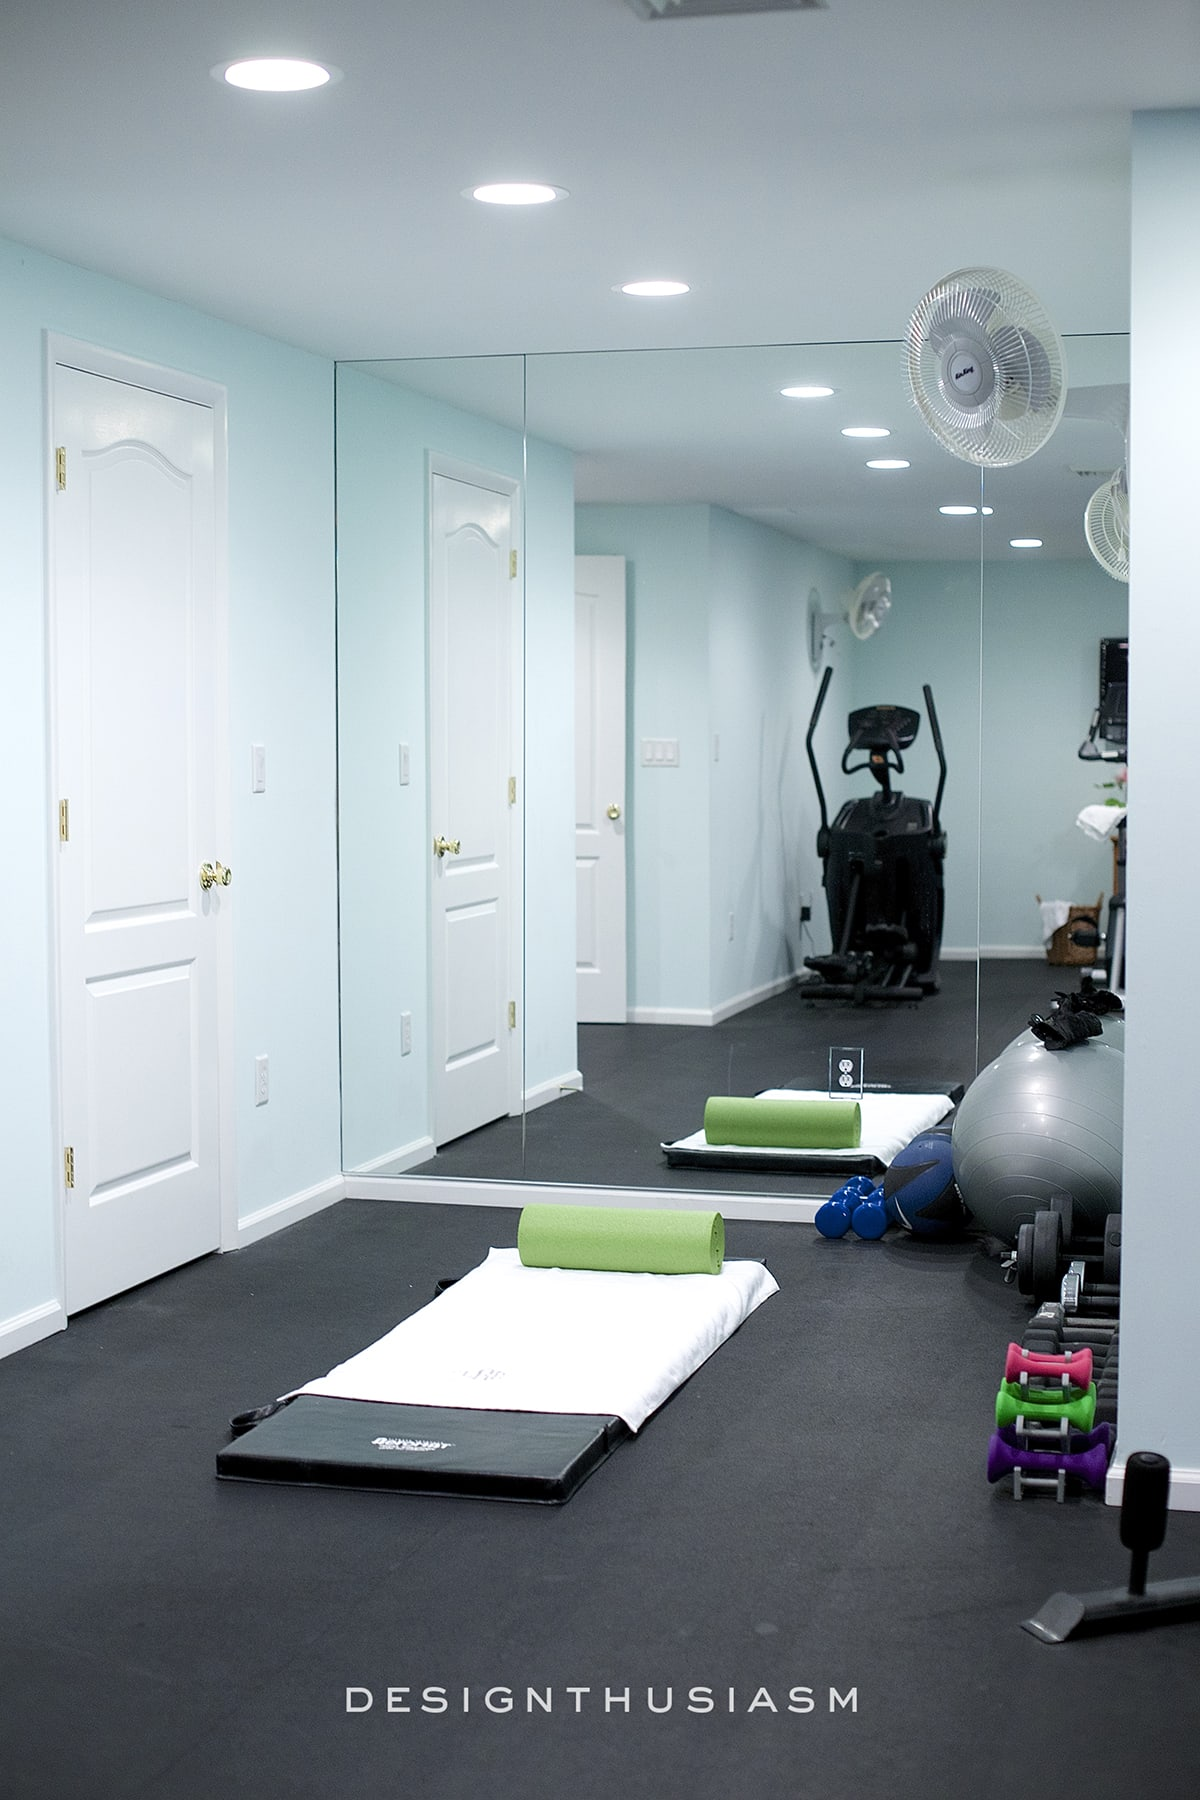 10 Ways to Add Style and Function to Your Home Gym Design | Designthusiasm.com